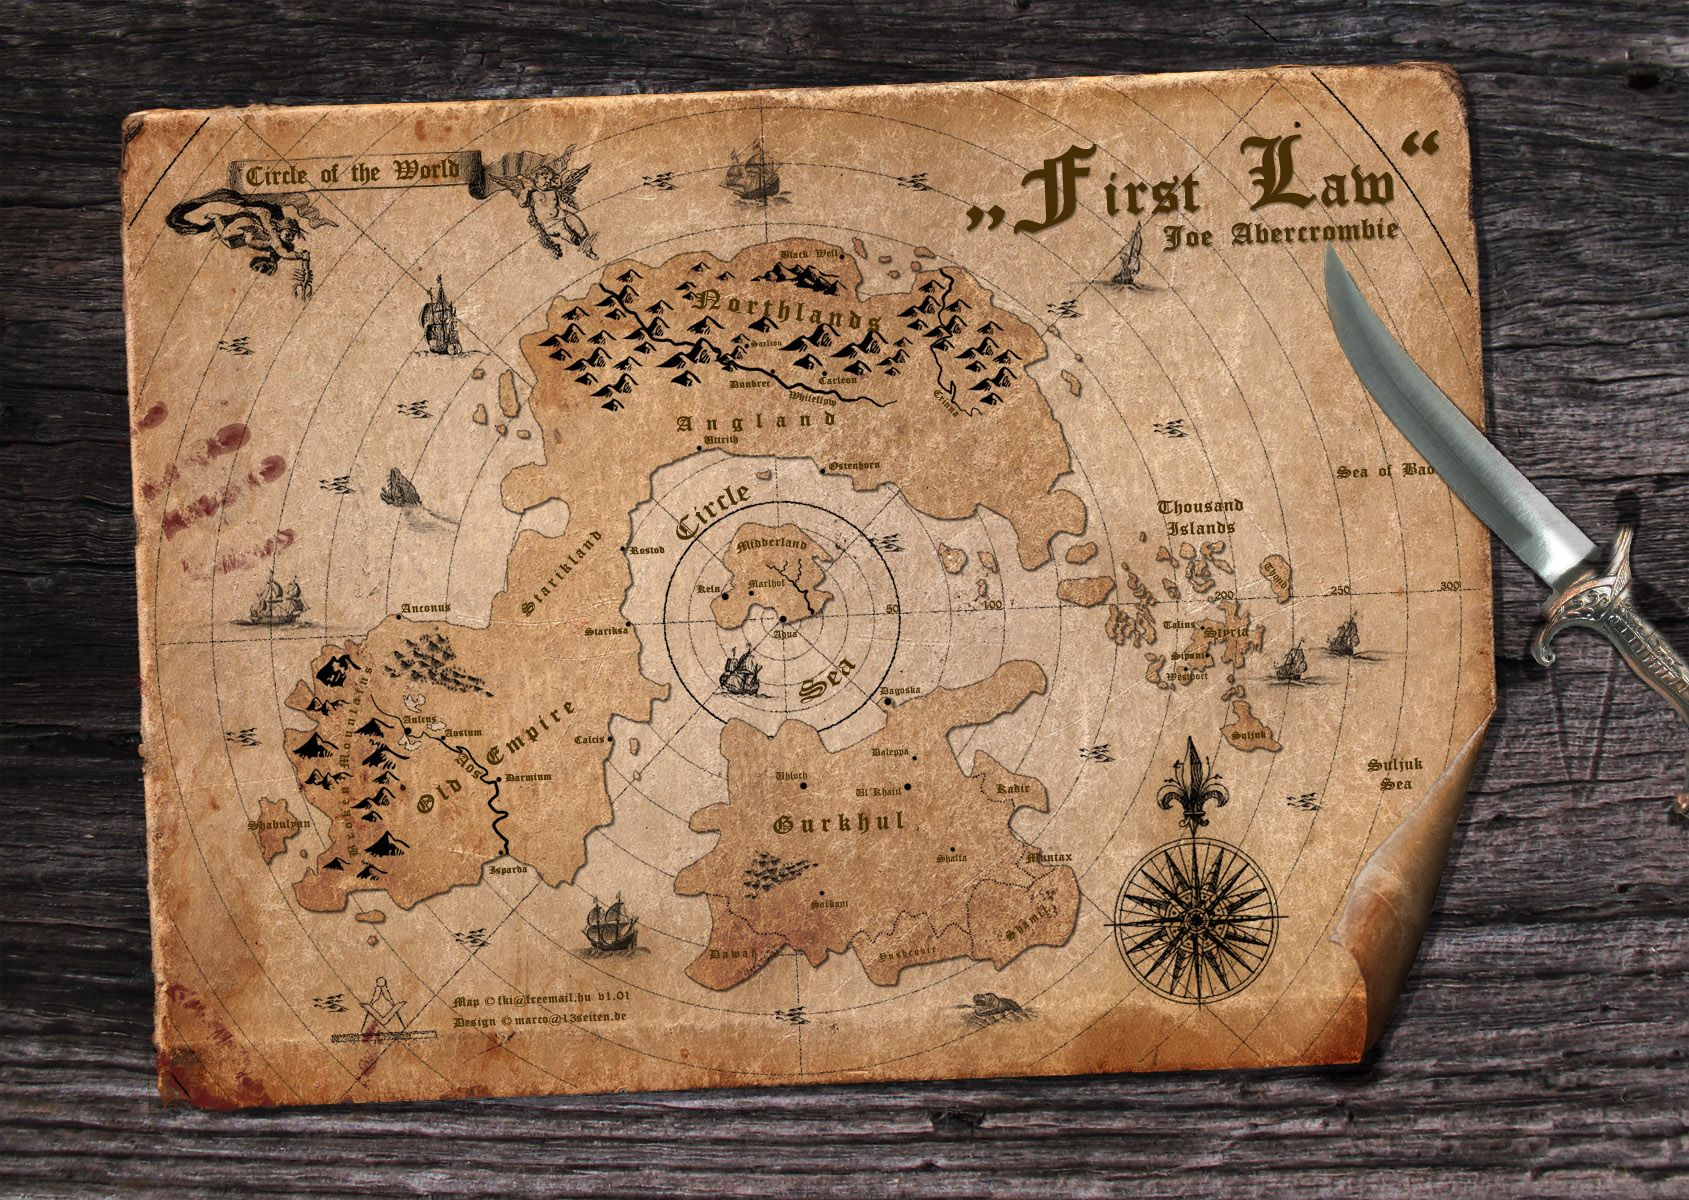 the first law world map The First Law Joe Abercrombie Map Fantasy Map Old Maps